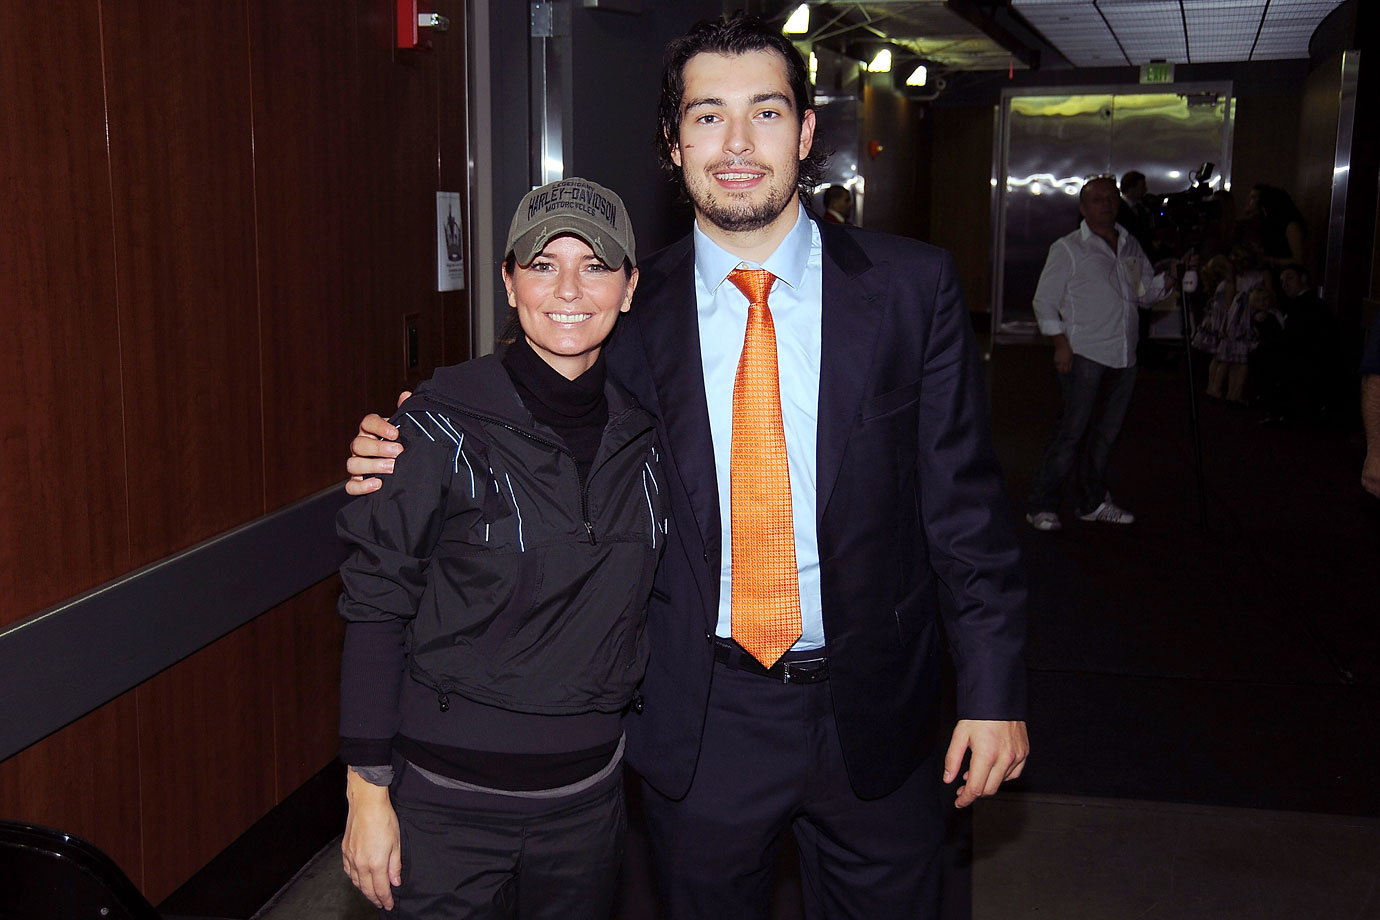 Shania Twain poses with Los Angeles Kings defenseman Drew Doughty after the Kings game against the Nashville Predators on Nov. 6, 2010 at Staples Center in Los Angeles.